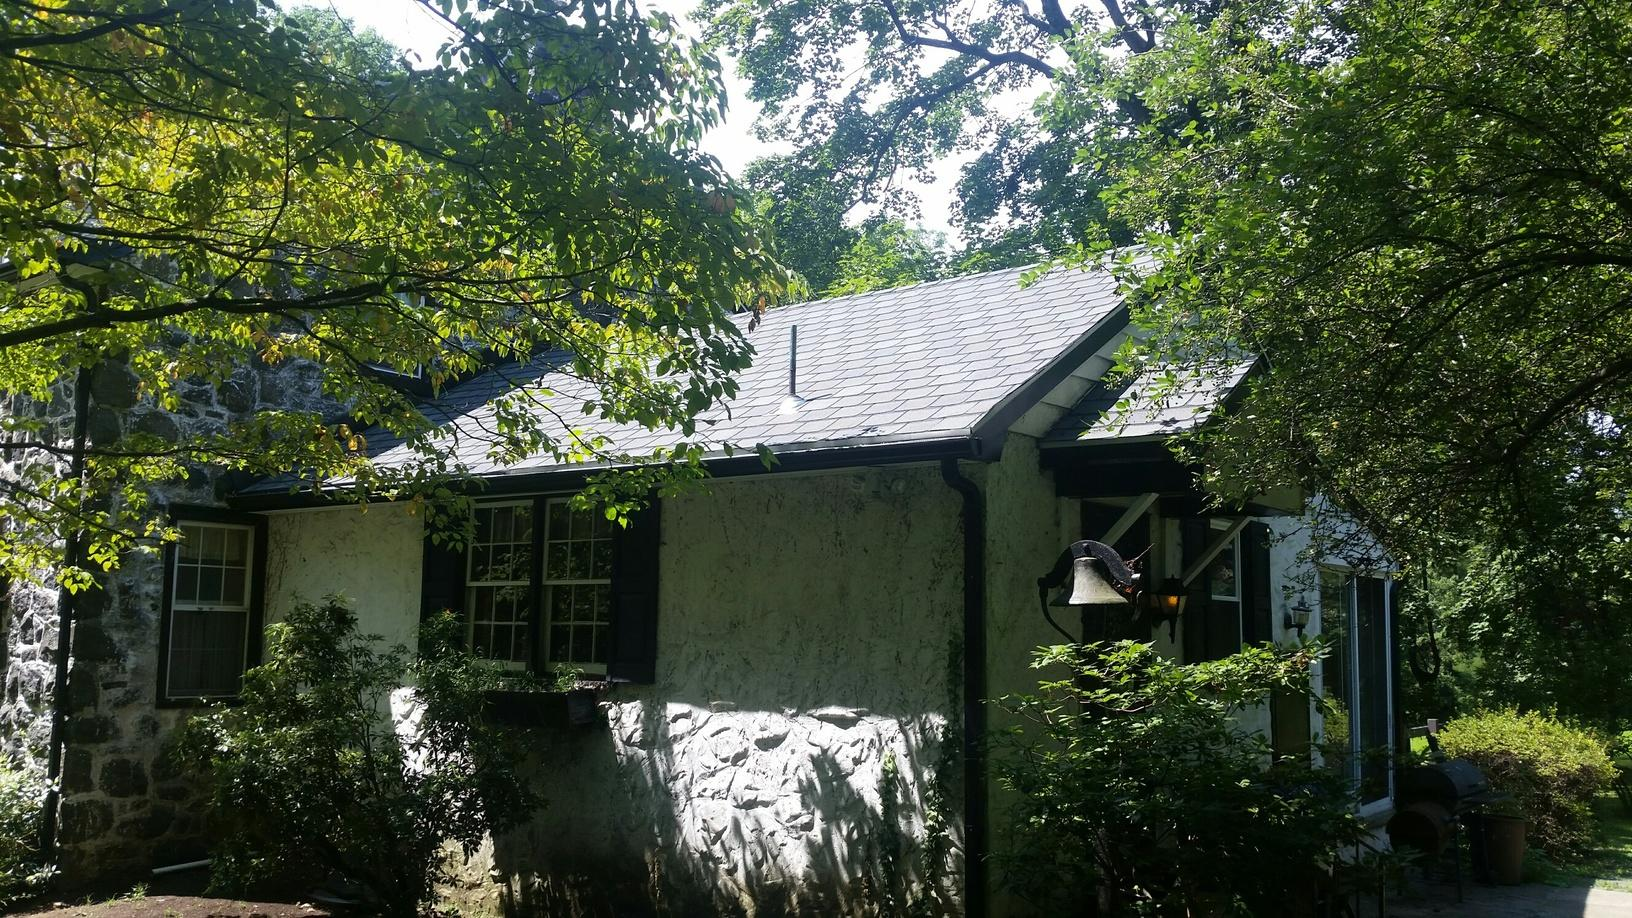 Roofing Services Shingle Roof Replacement In Historic